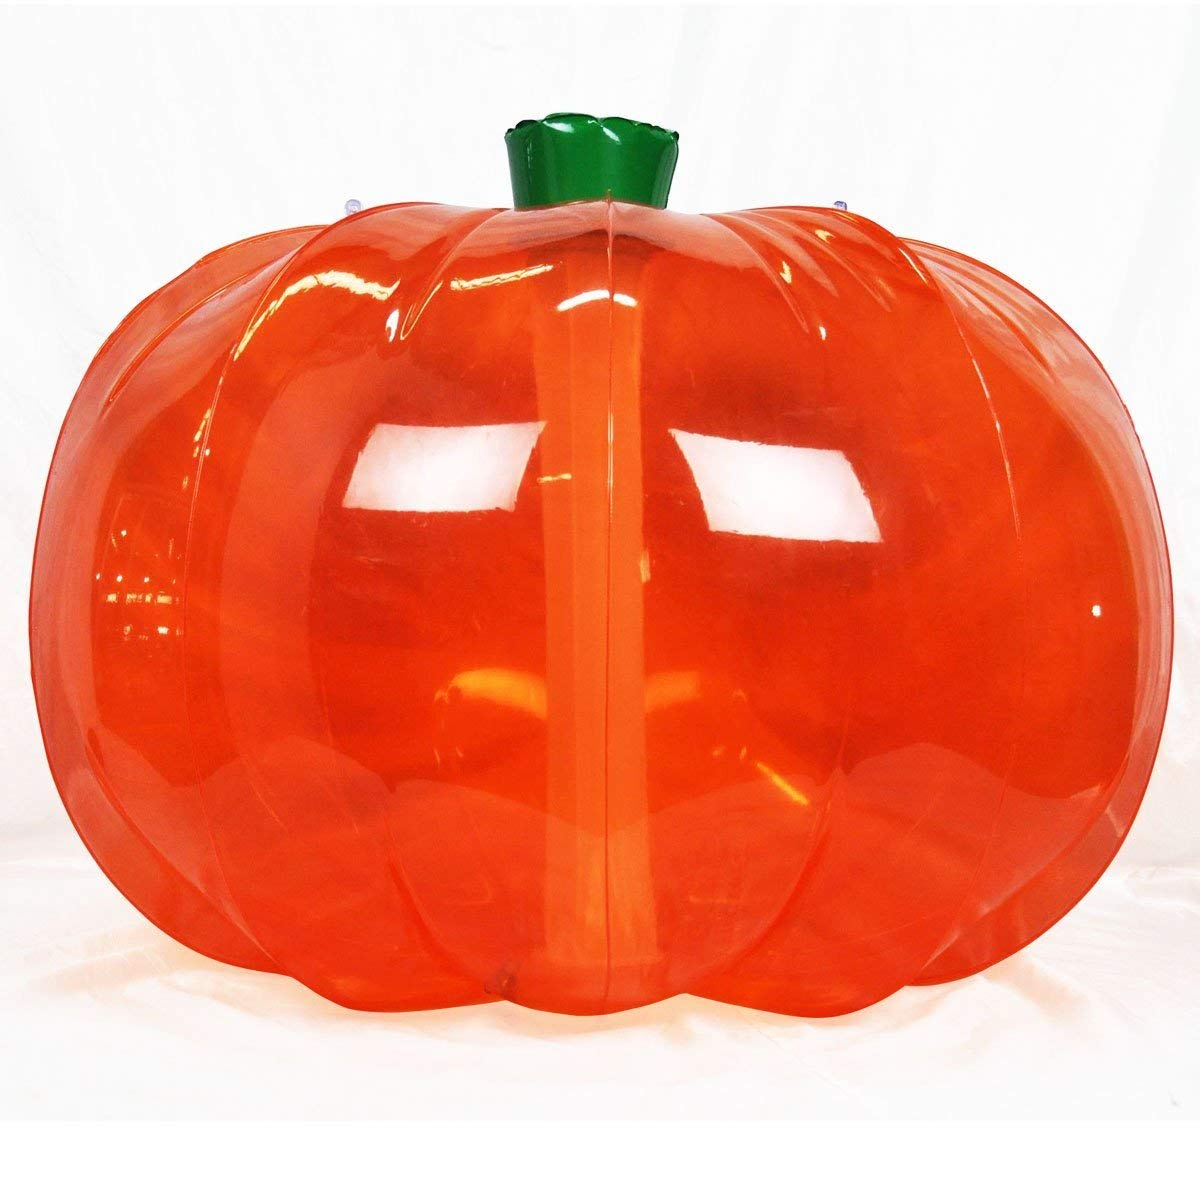 Jet Creations Pumpkin Size 36 inch Tall – Yard Inflatable Sign Halloween DYI Thanksgiving Crafts Home Decor Kids and Adults, Translucent/Multicolor